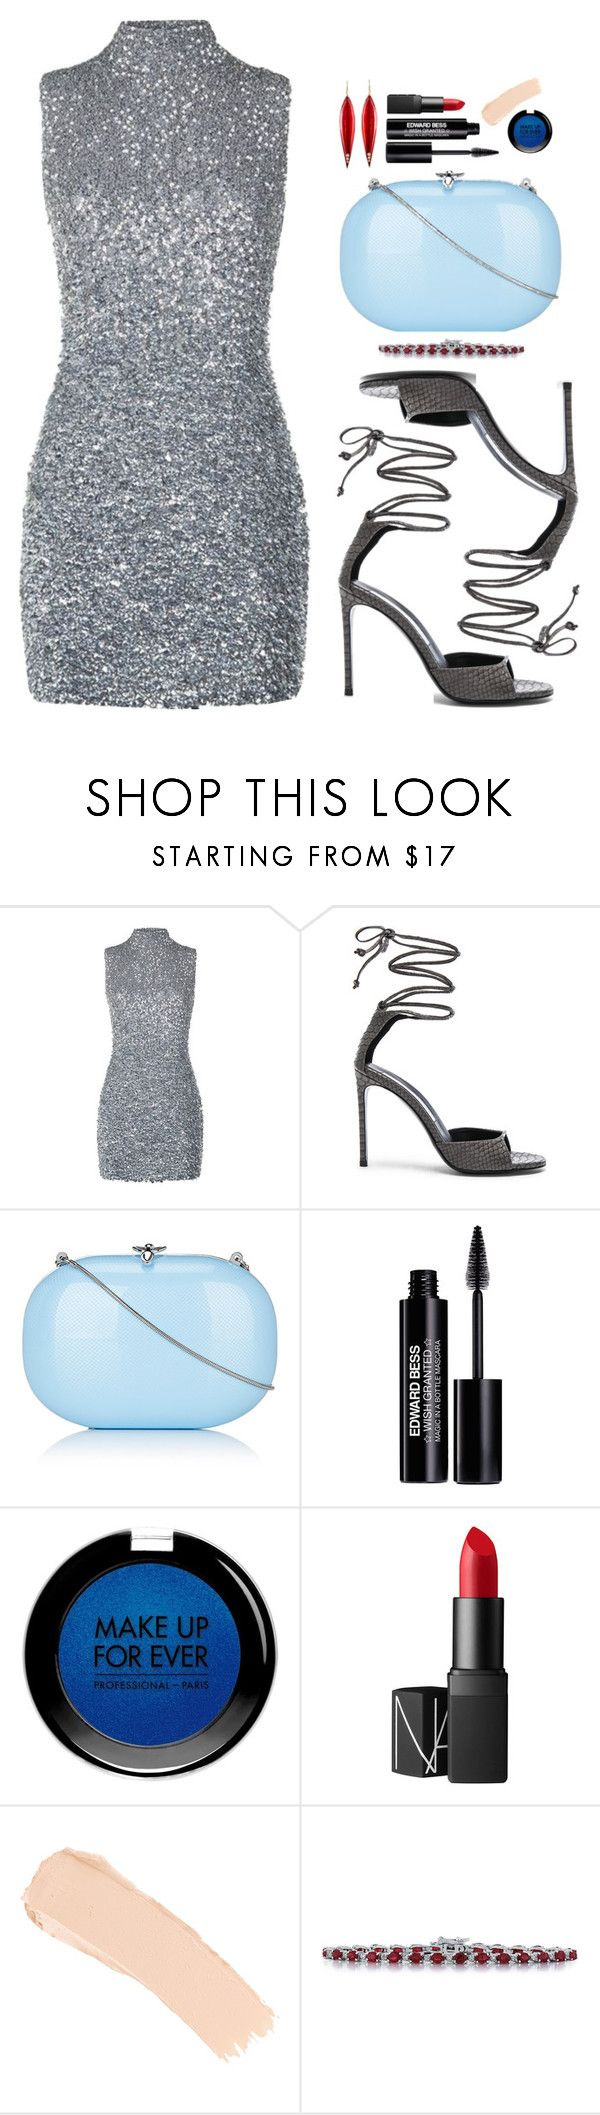 """NEW YEAR: PARTY DRESS"" by noa5353 ❤ liked on Polyvore featuring Harrods, STELLA McCARTNEY, Jeffrey Levinson, Edward Bess, MAKE UP FOR EVER, NARS Cosmetics, La Mer, Magnum, Mark Davis and partydress"